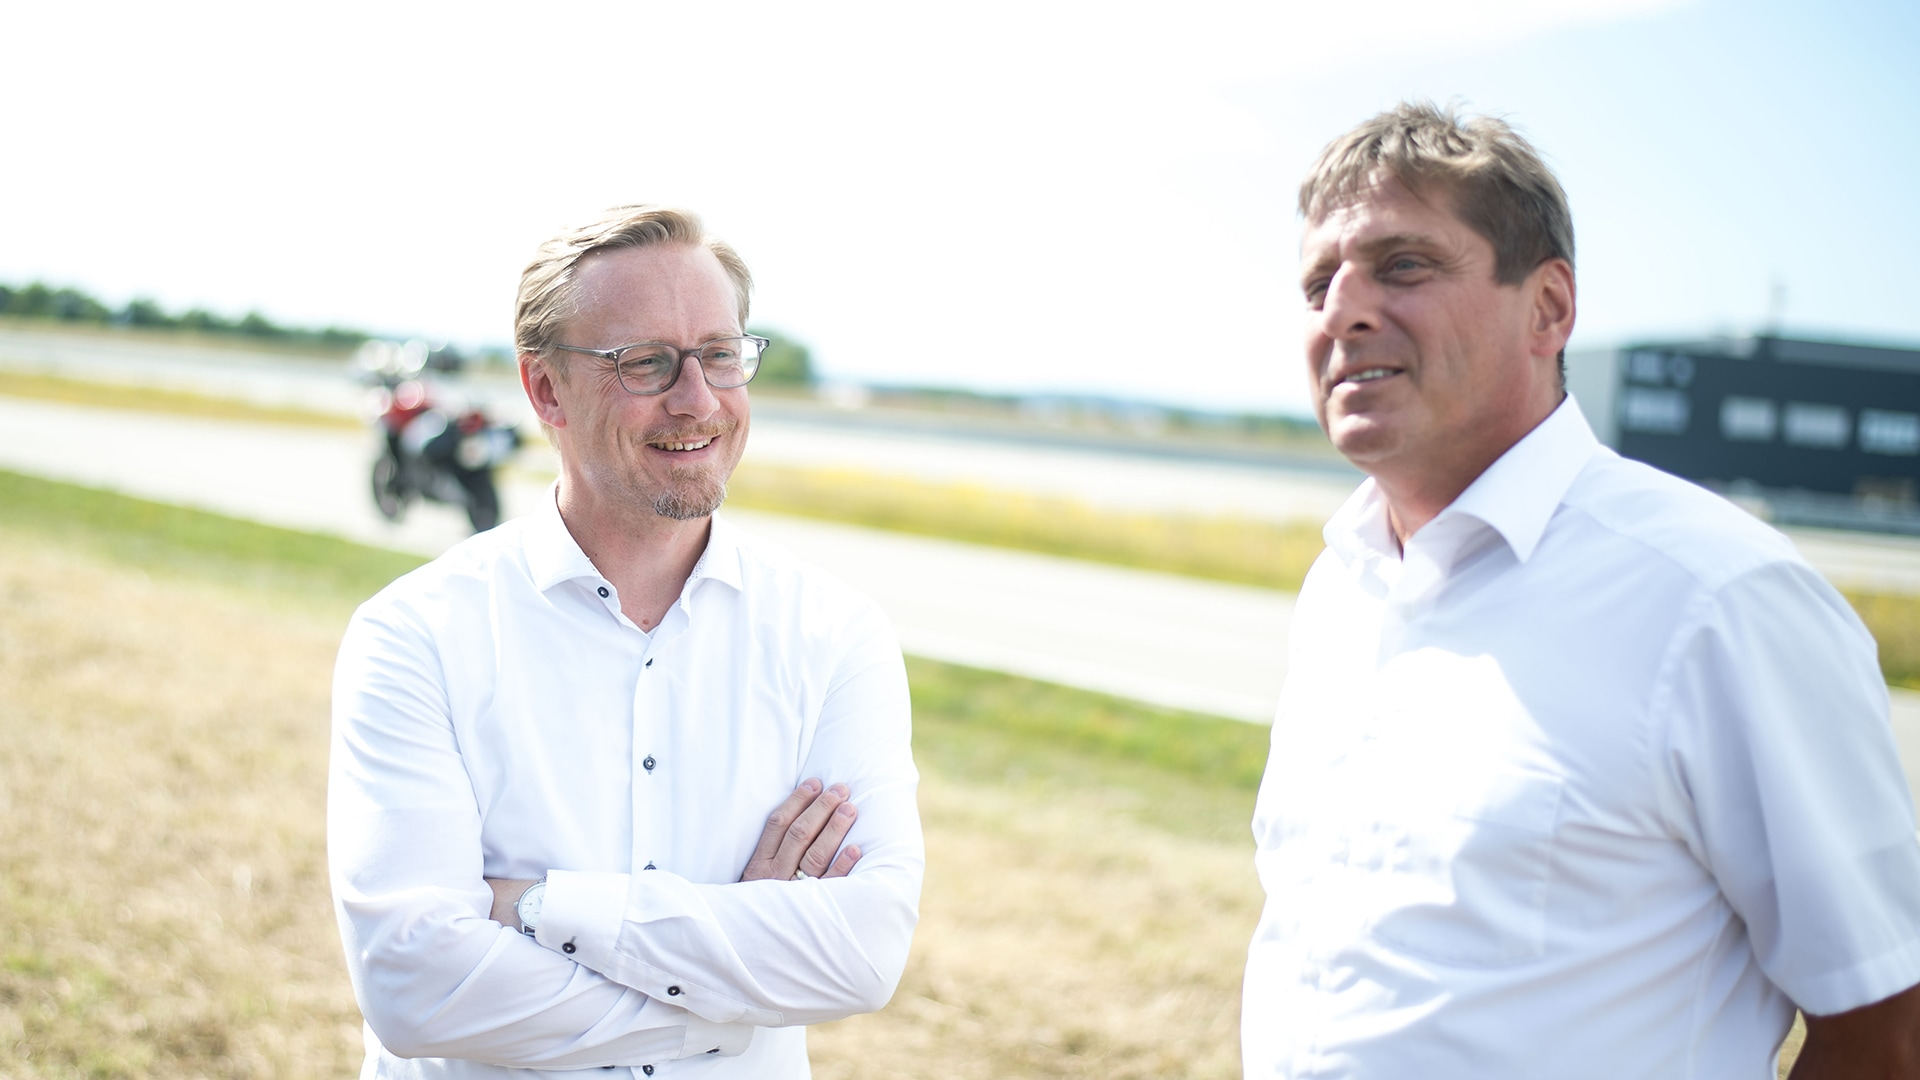 5GAA chair Christoph Voigt (left) and Gerhard Stanzl, Head of Smart Mobility / Machine Learning Pre-Development at Audi Electronics Venture GmbH, are pinning high hopes on the new technologies.